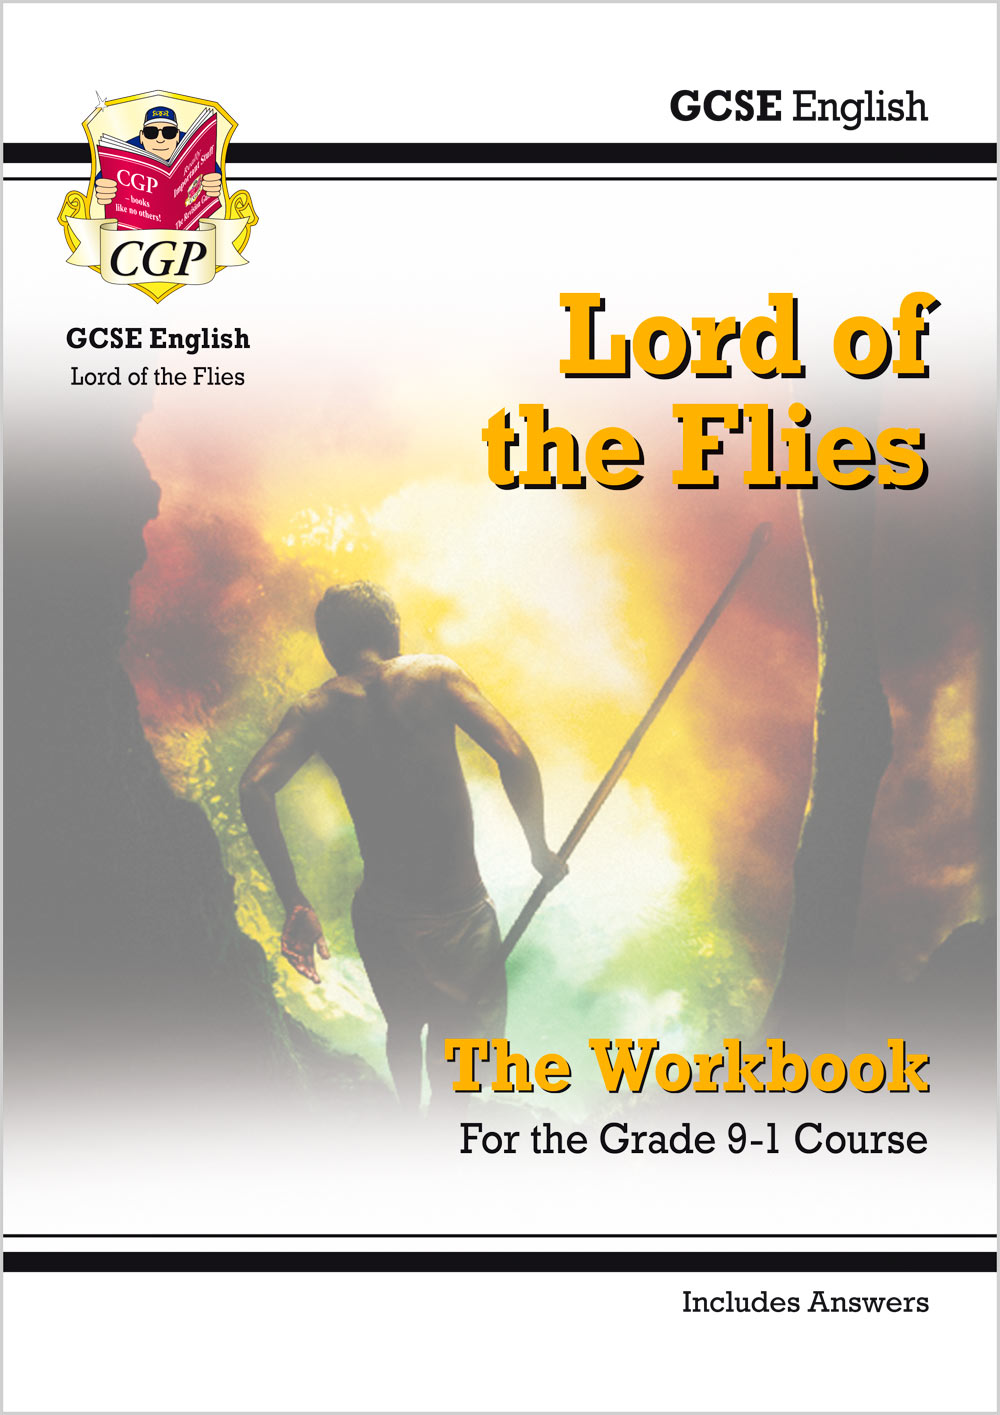 ETWL41 - New Grade 9-1 GCSE English - Lord of the Flies Workbook (includes Answers)